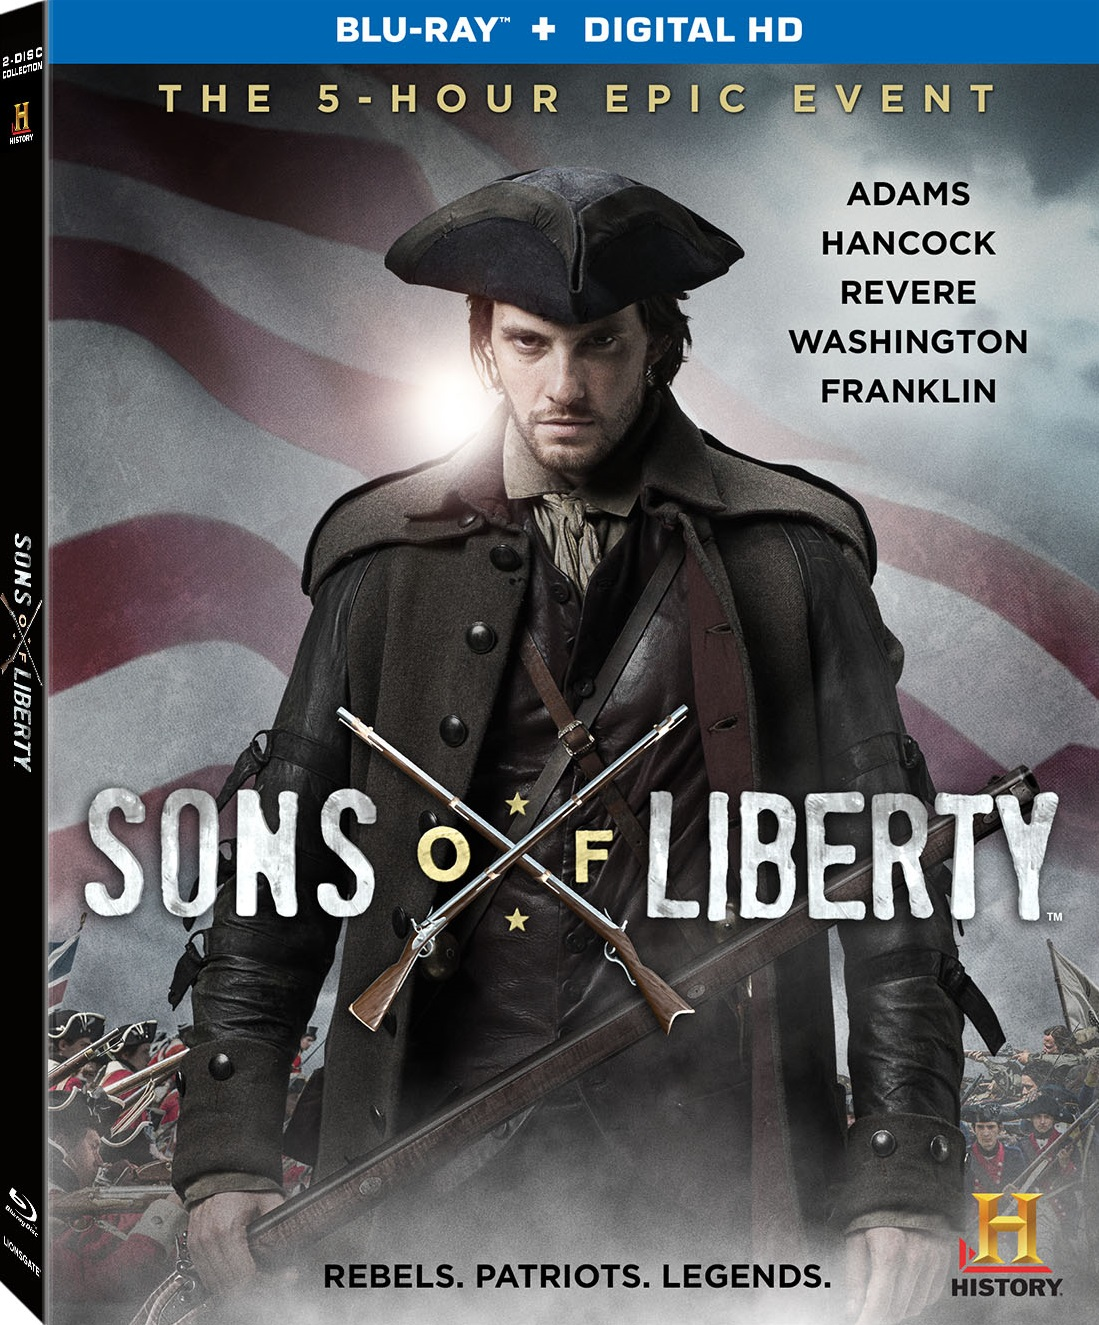 Sons of liberty date